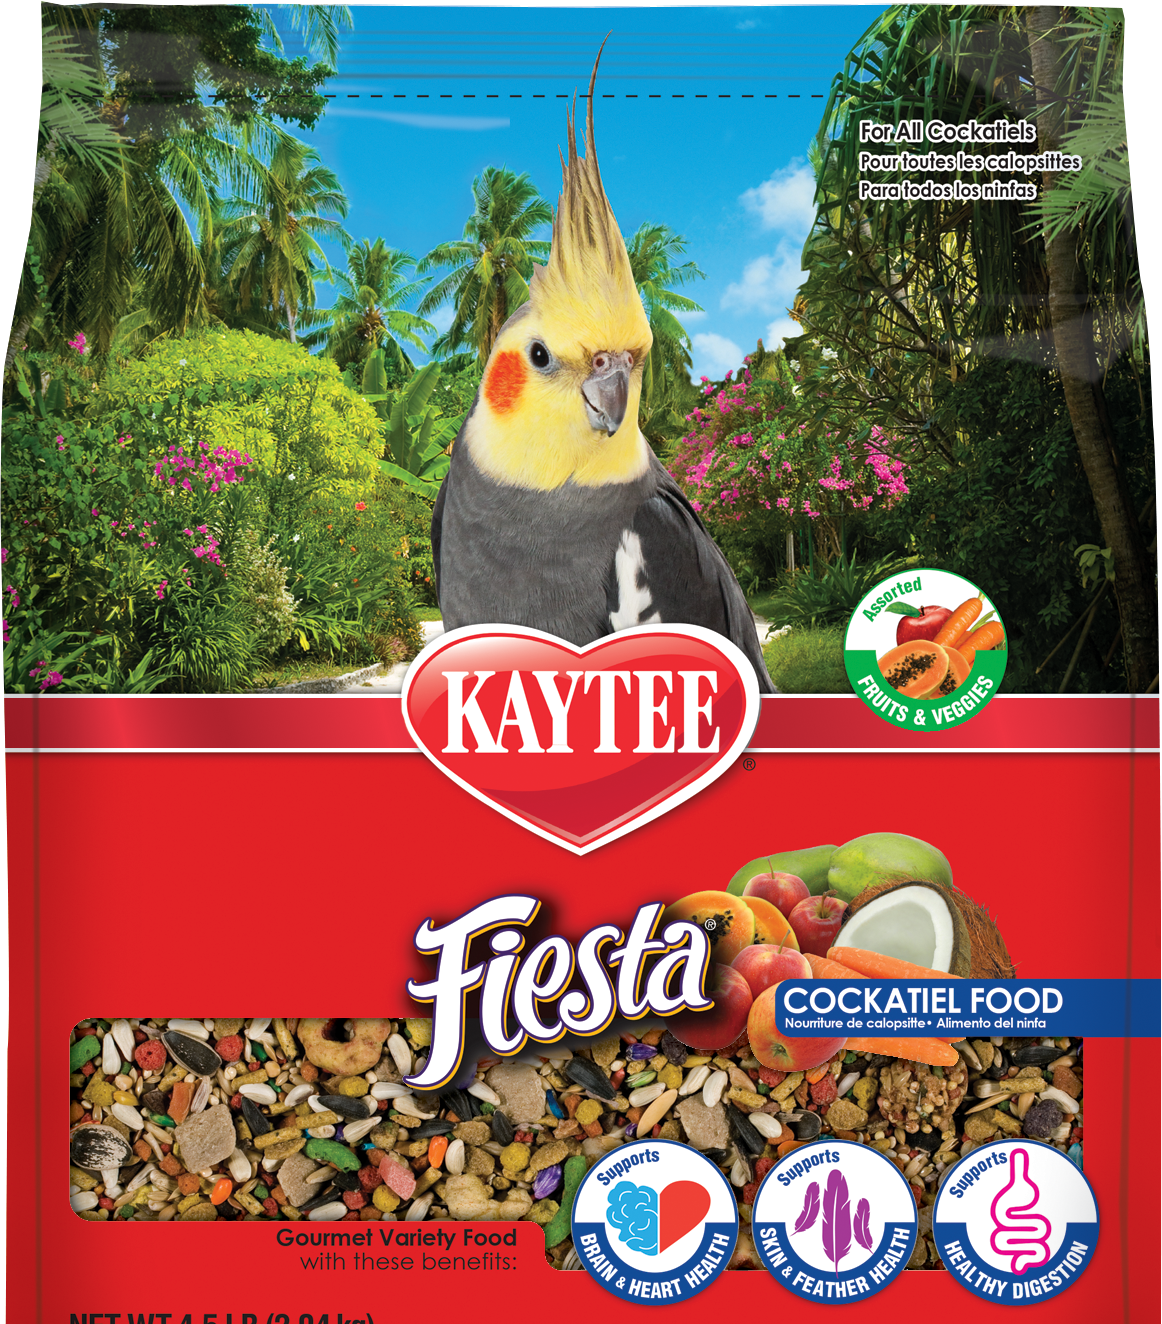 Cockatiel Food